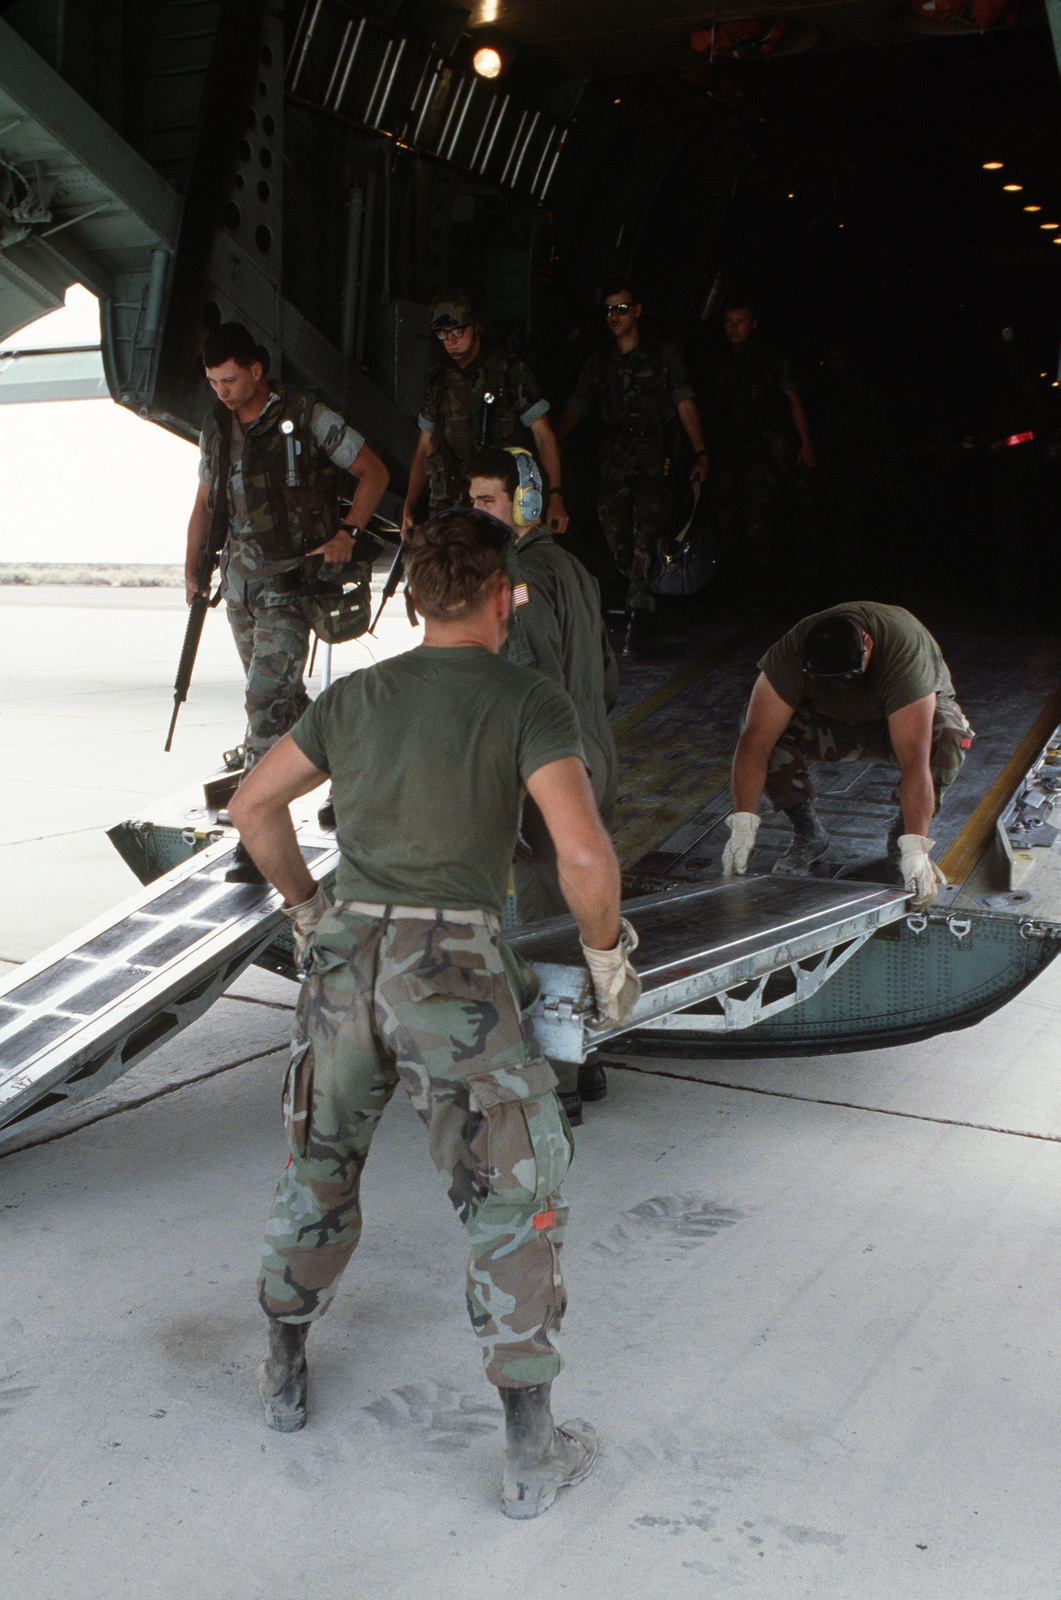 Air Force ground crewmen assemble a boarding ramp as Marines march out the rear cargo doors of a C-141B Starlifter aircraft during a joint Air Force/Marine Corps exercise.  Members of the Air Mobile Contingency Force, 2nd Battalion, 9th Marines are working with members of the Air Force's 63rd Military Airlift Wing to airlift Marines and 737 tons of vehicles, supplies and equipment to China Lake Proving Grounds for field maneuvers